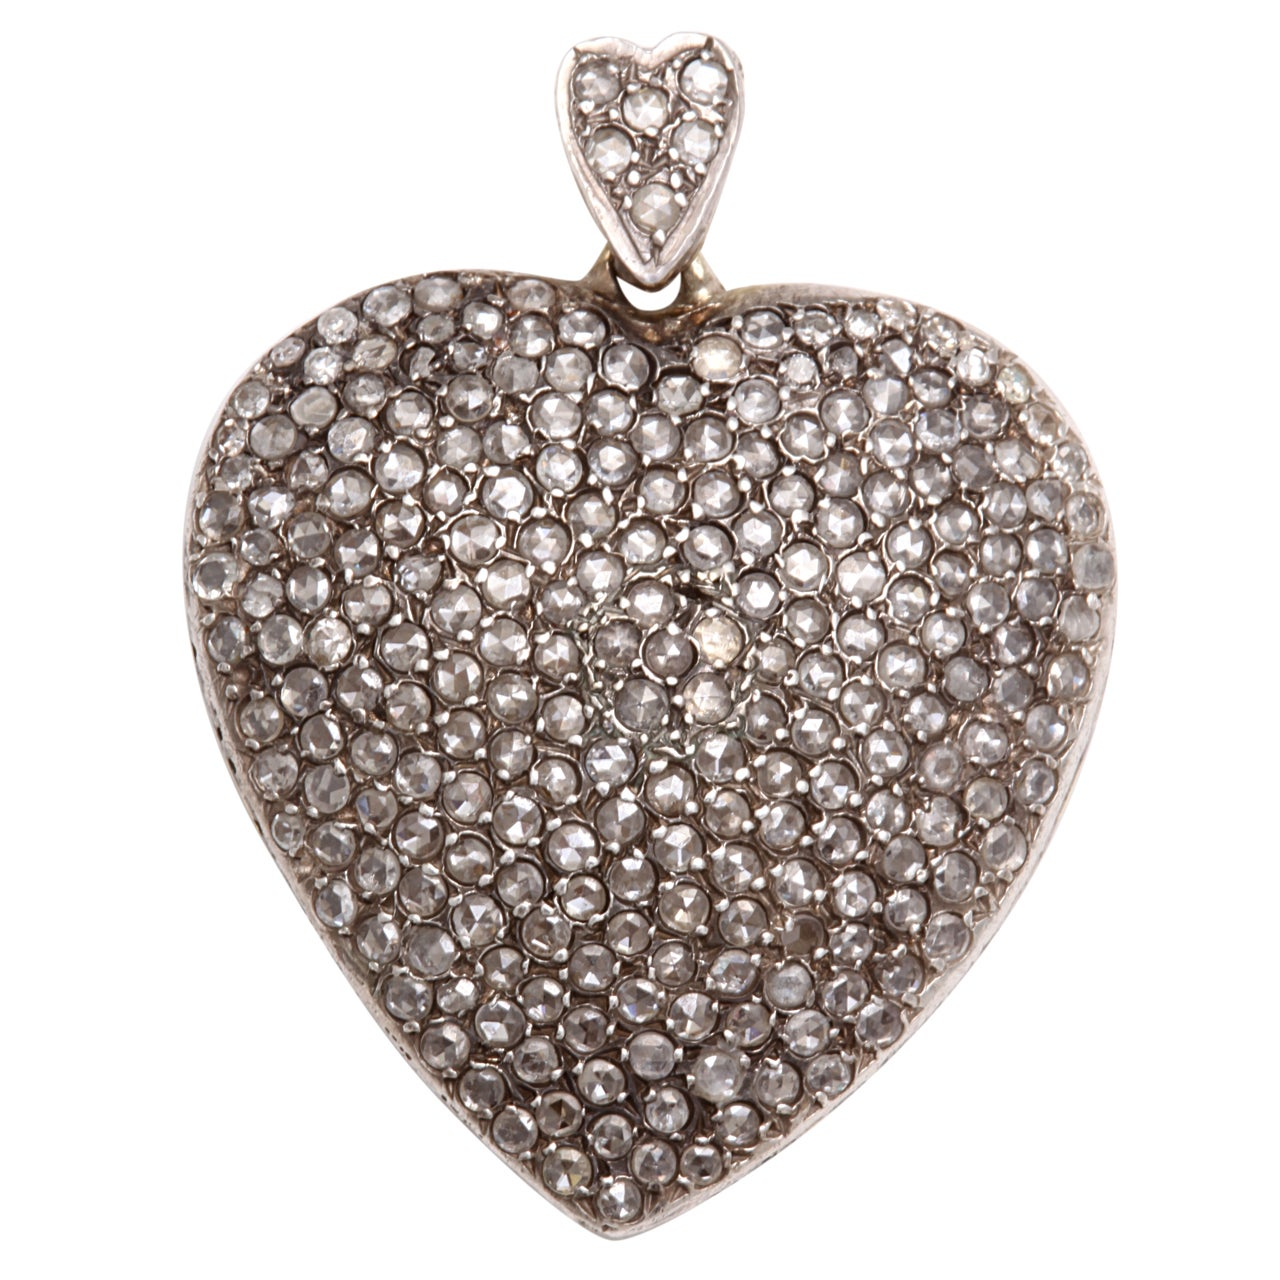 Large Antique Diamond Heart Pendant At 1stdibs